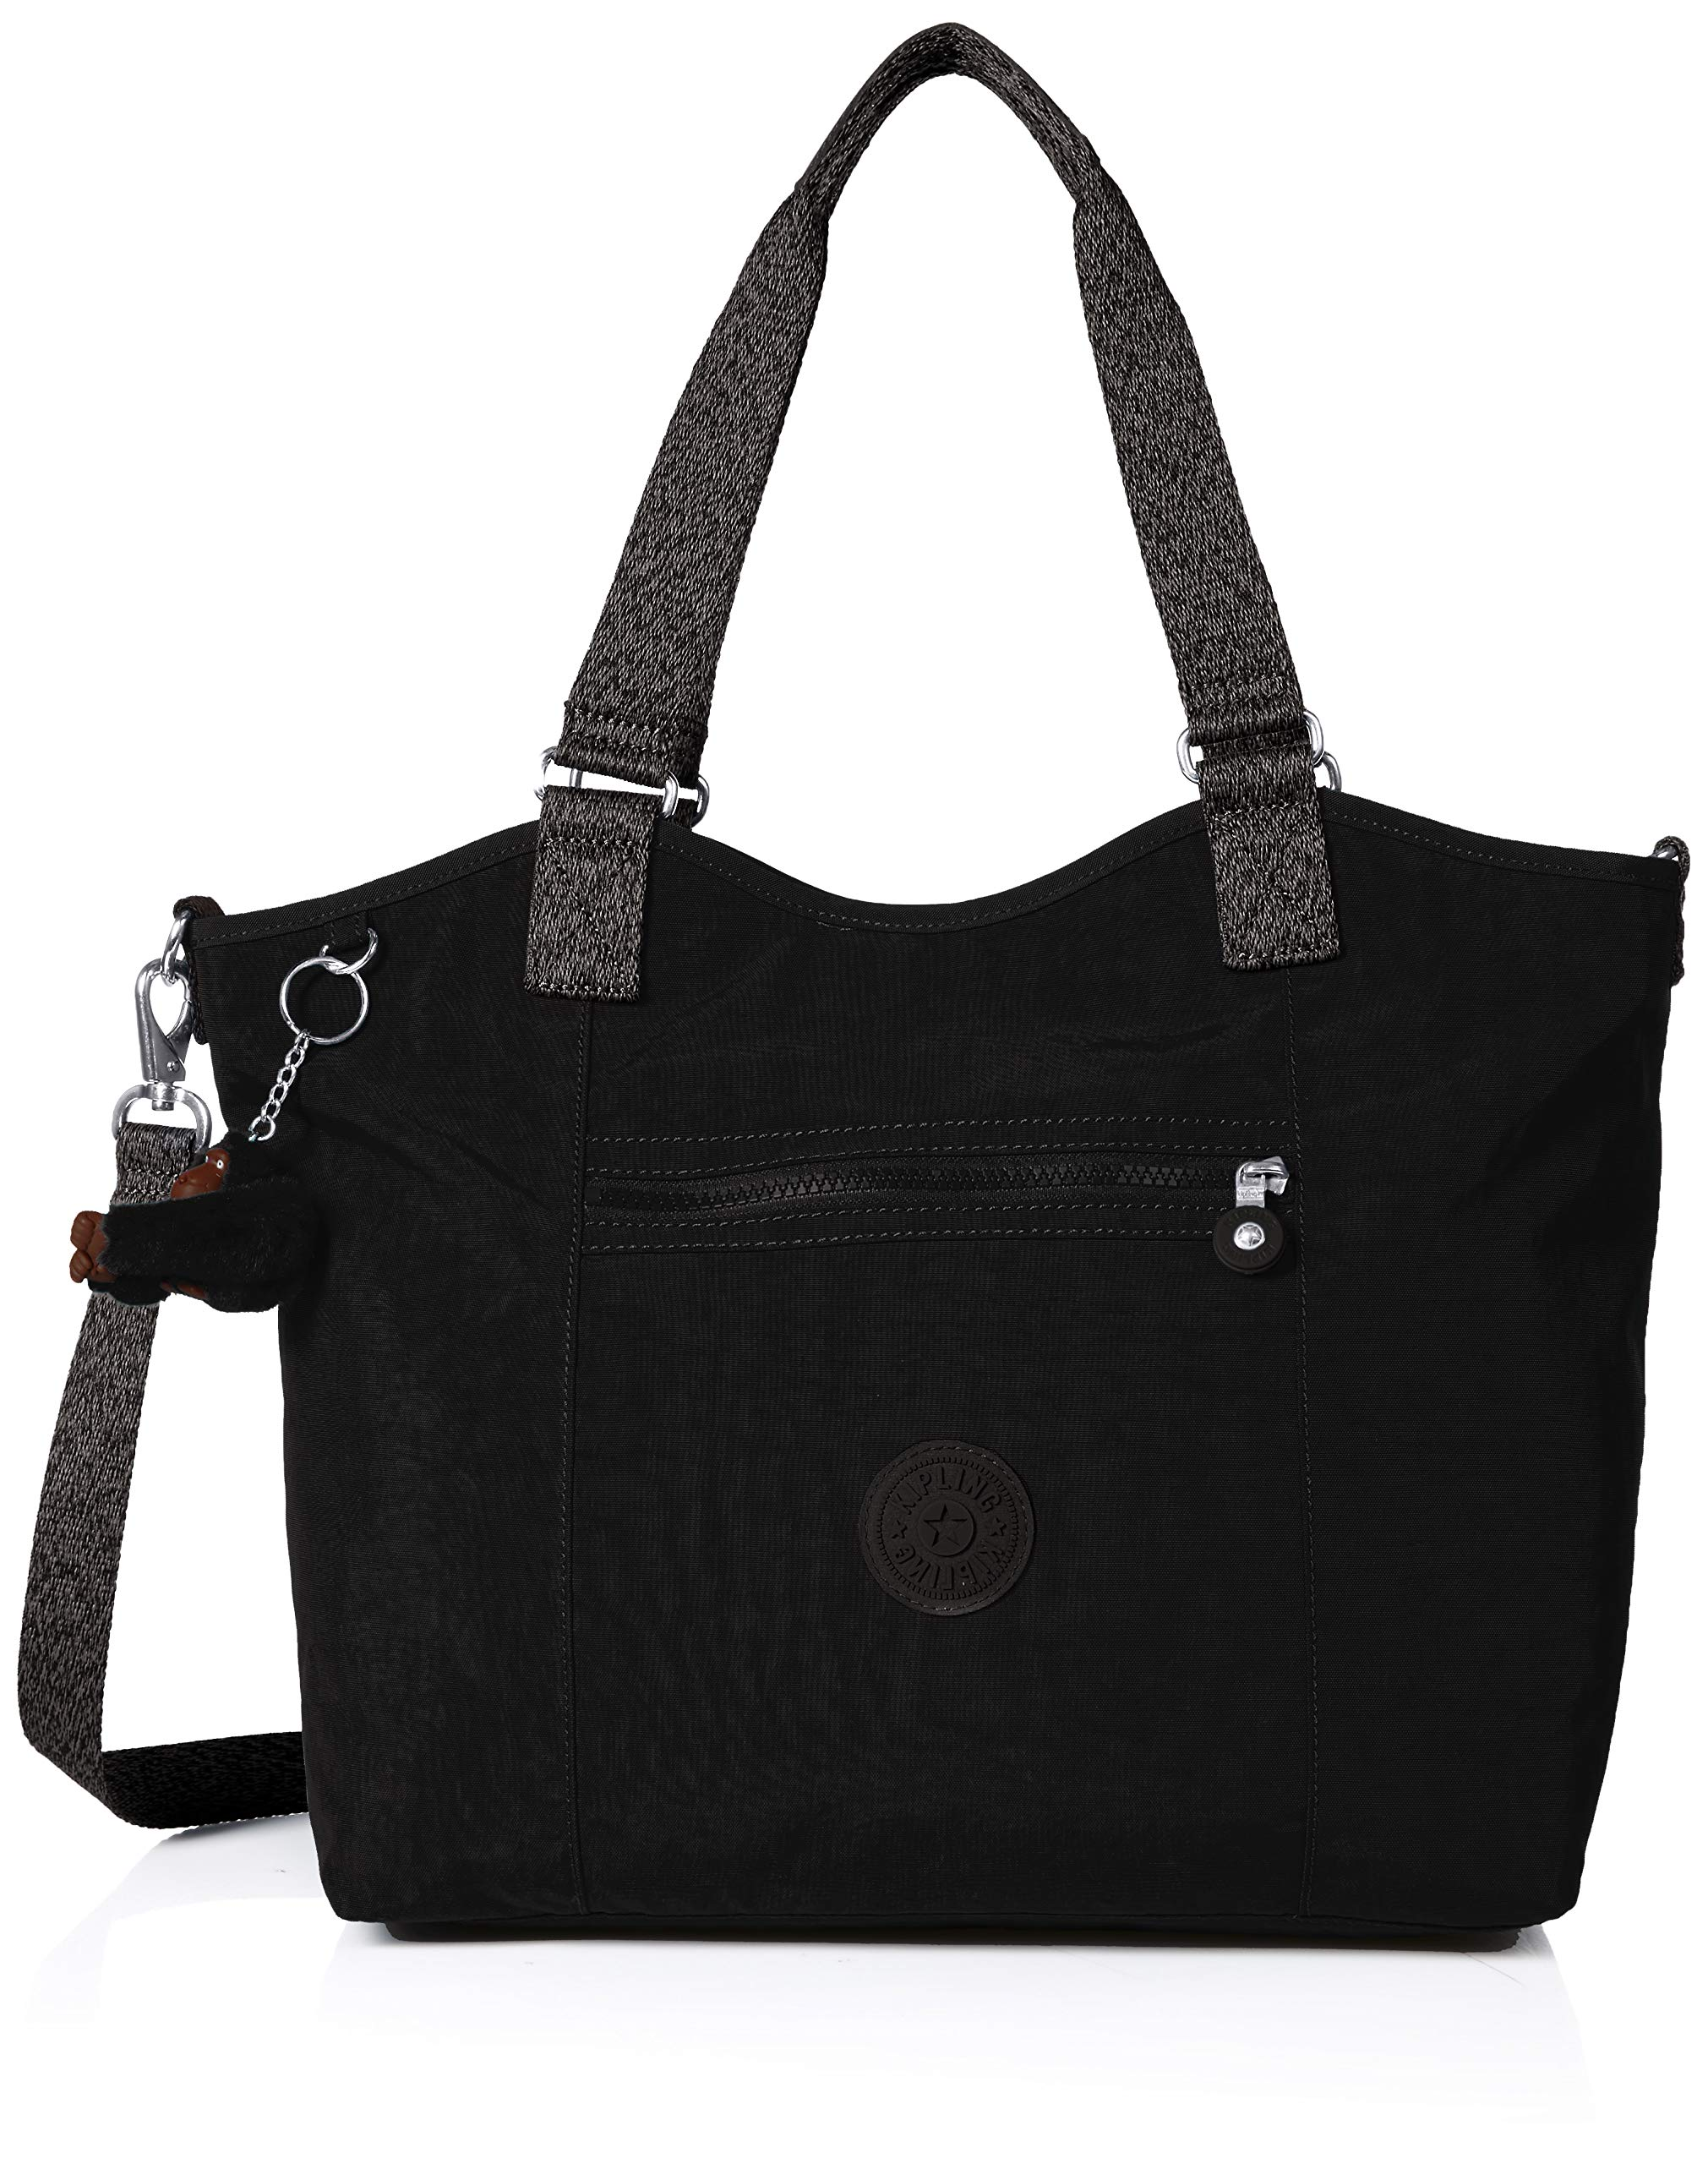 Kipling Griffin Tote Bag,  Black, One Size